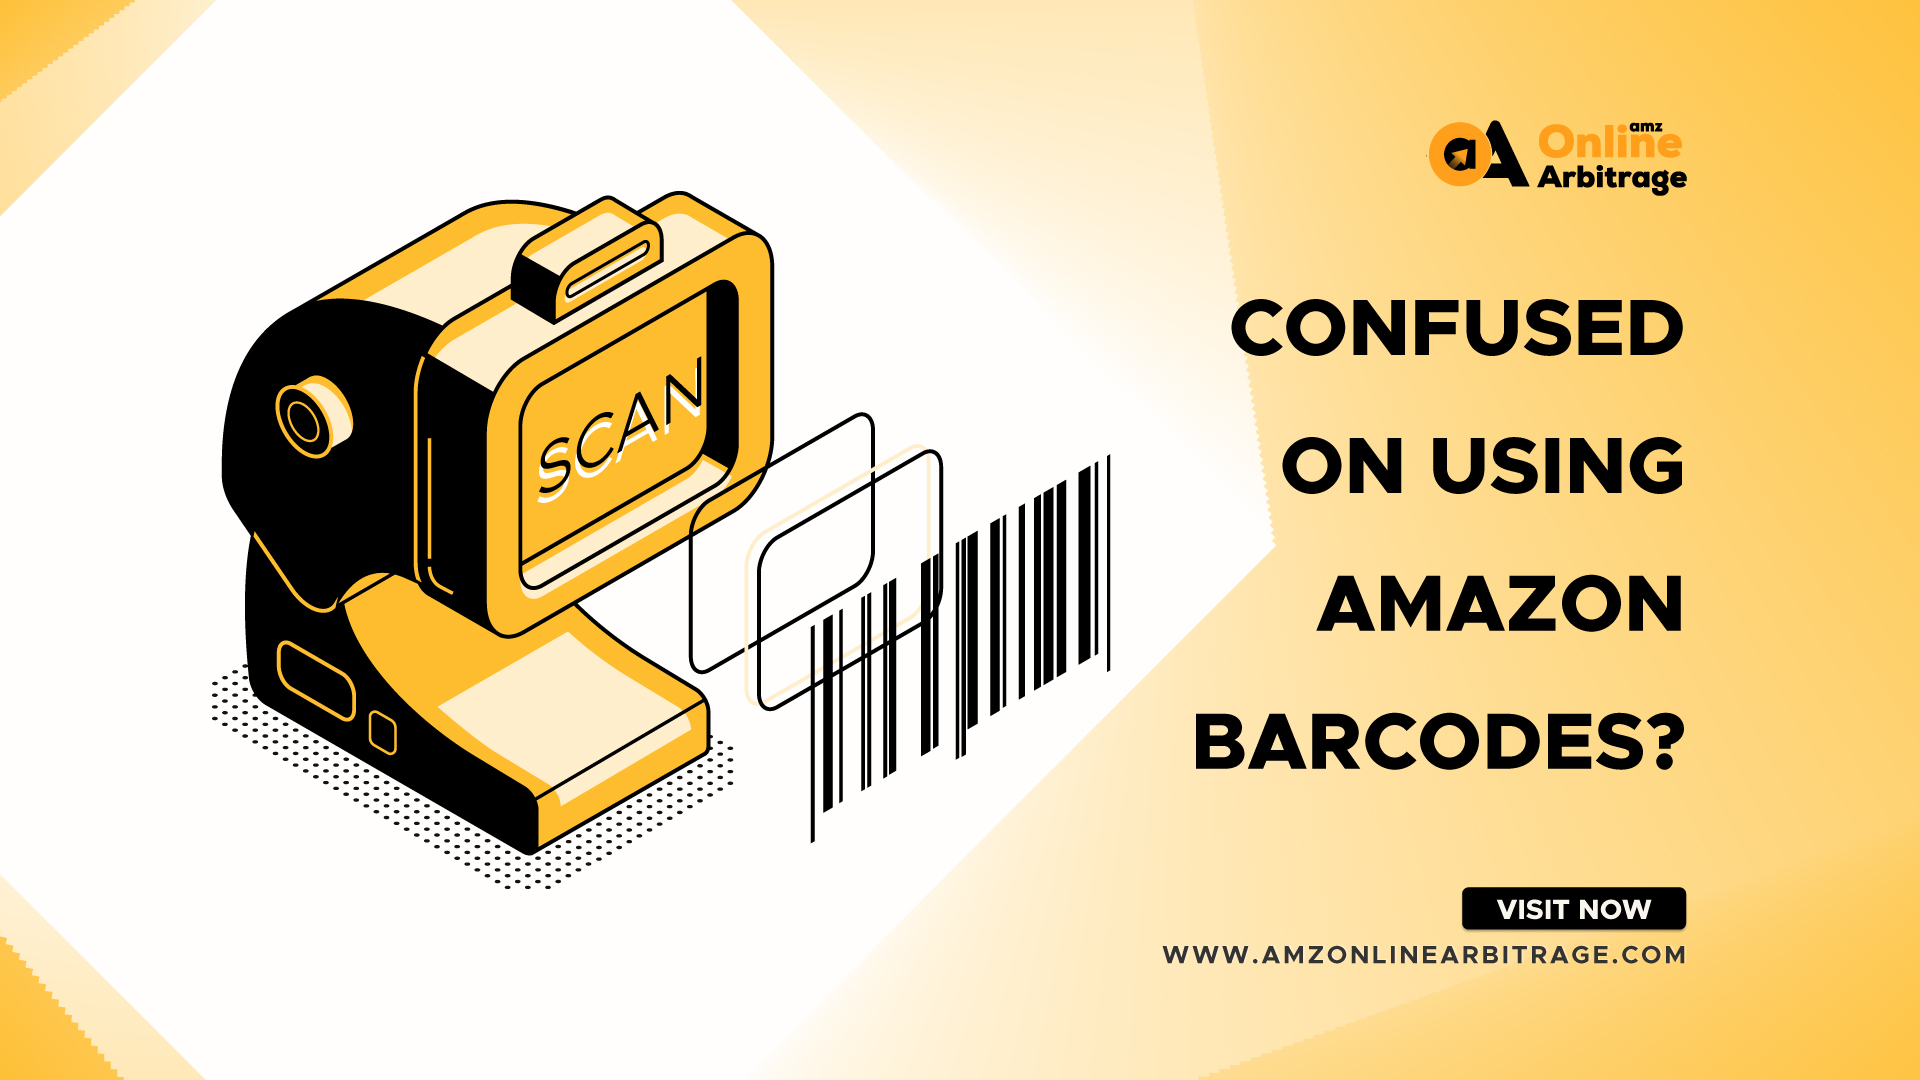 CONFUSED ON USING AMAZON BARCODES?